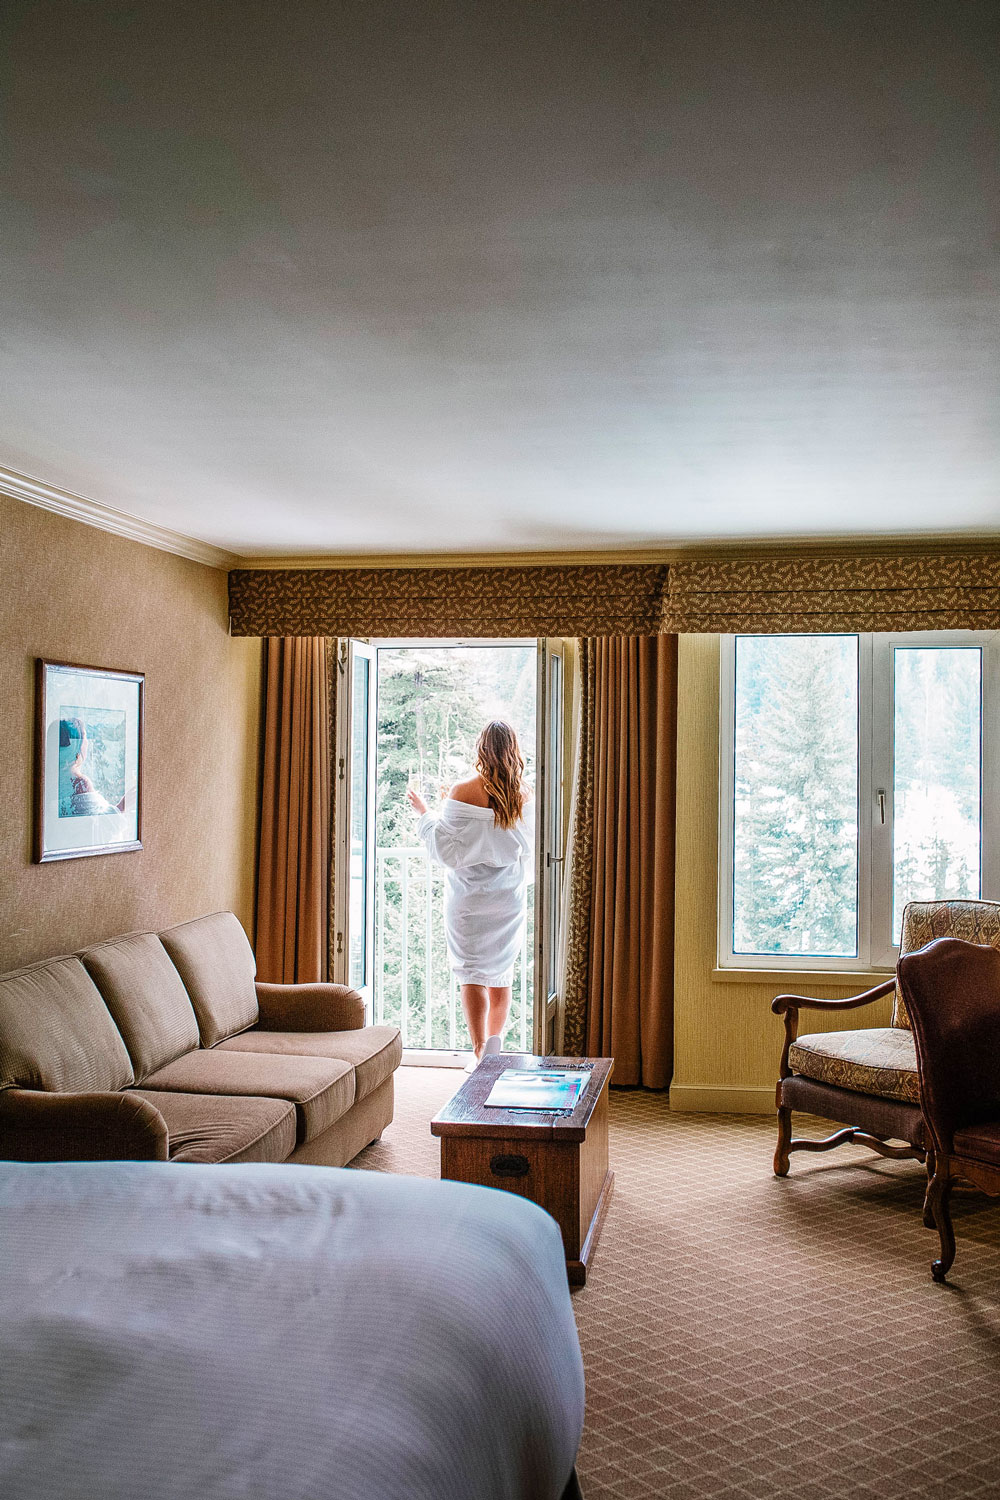 fairmont chateau rooms review by To Vogue or Bust